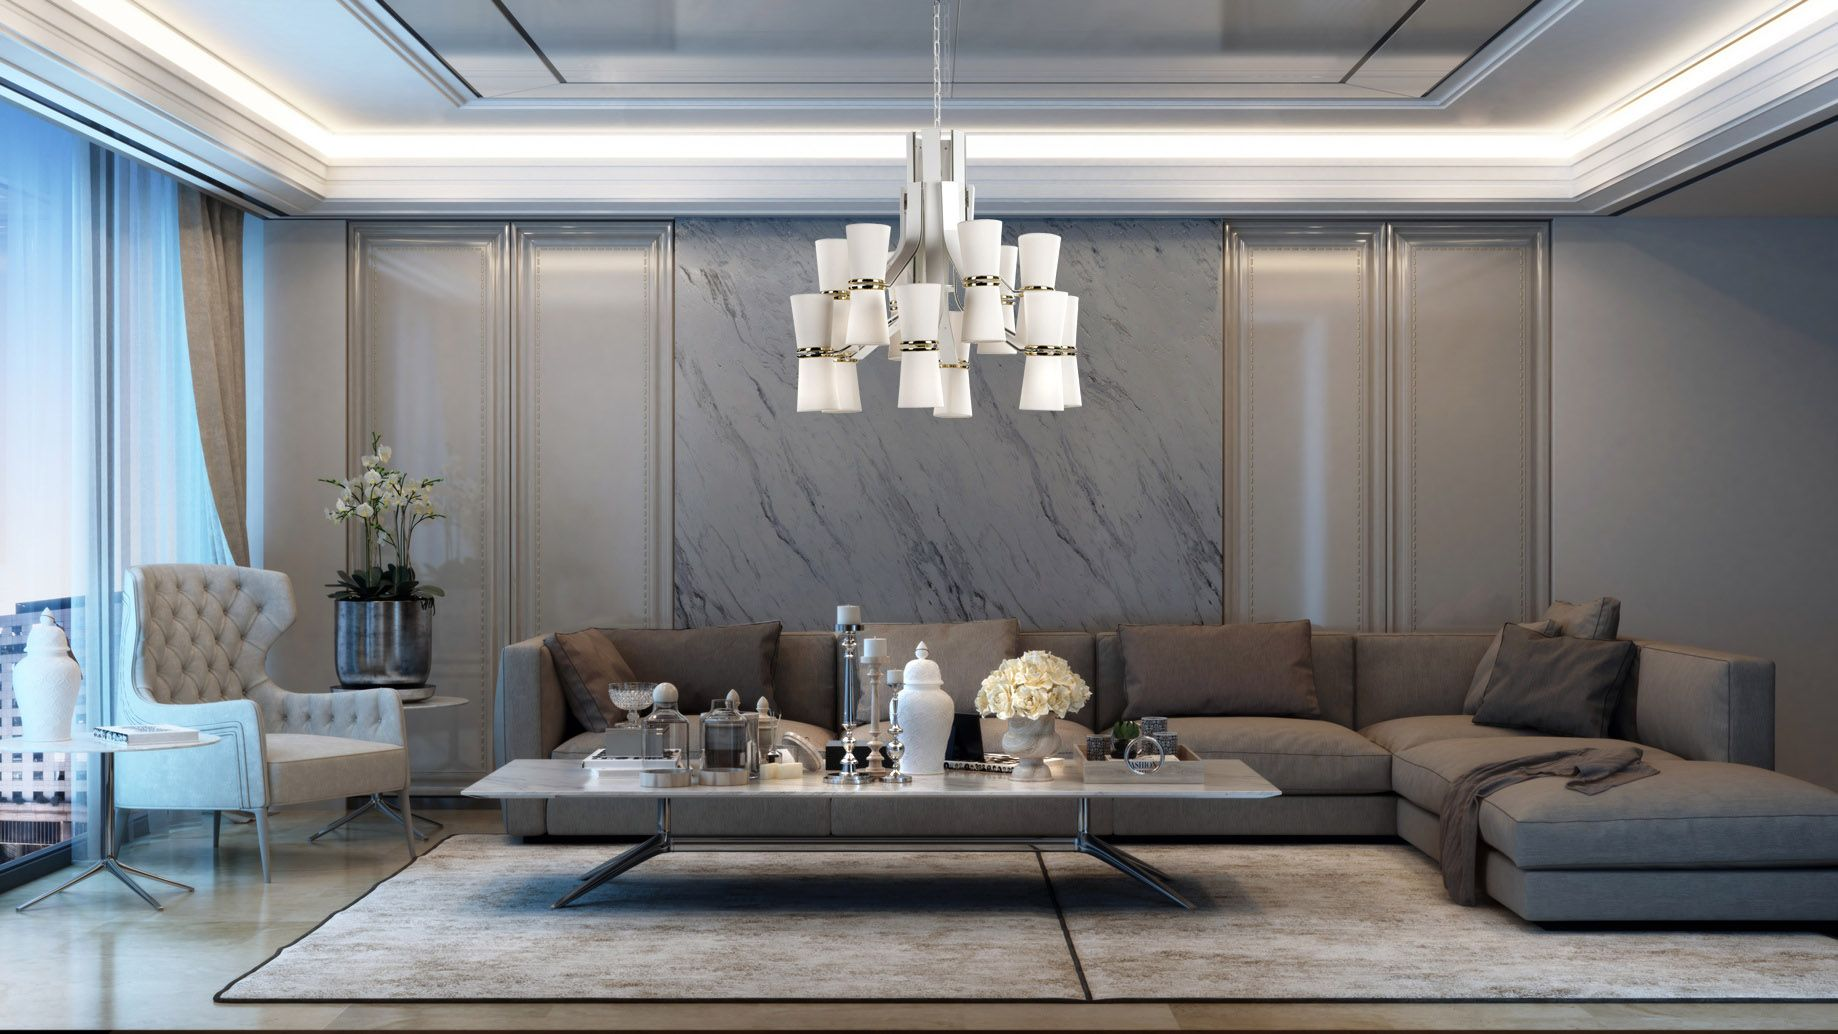 Muse chandelier designed by andrea bonini for isaaclight